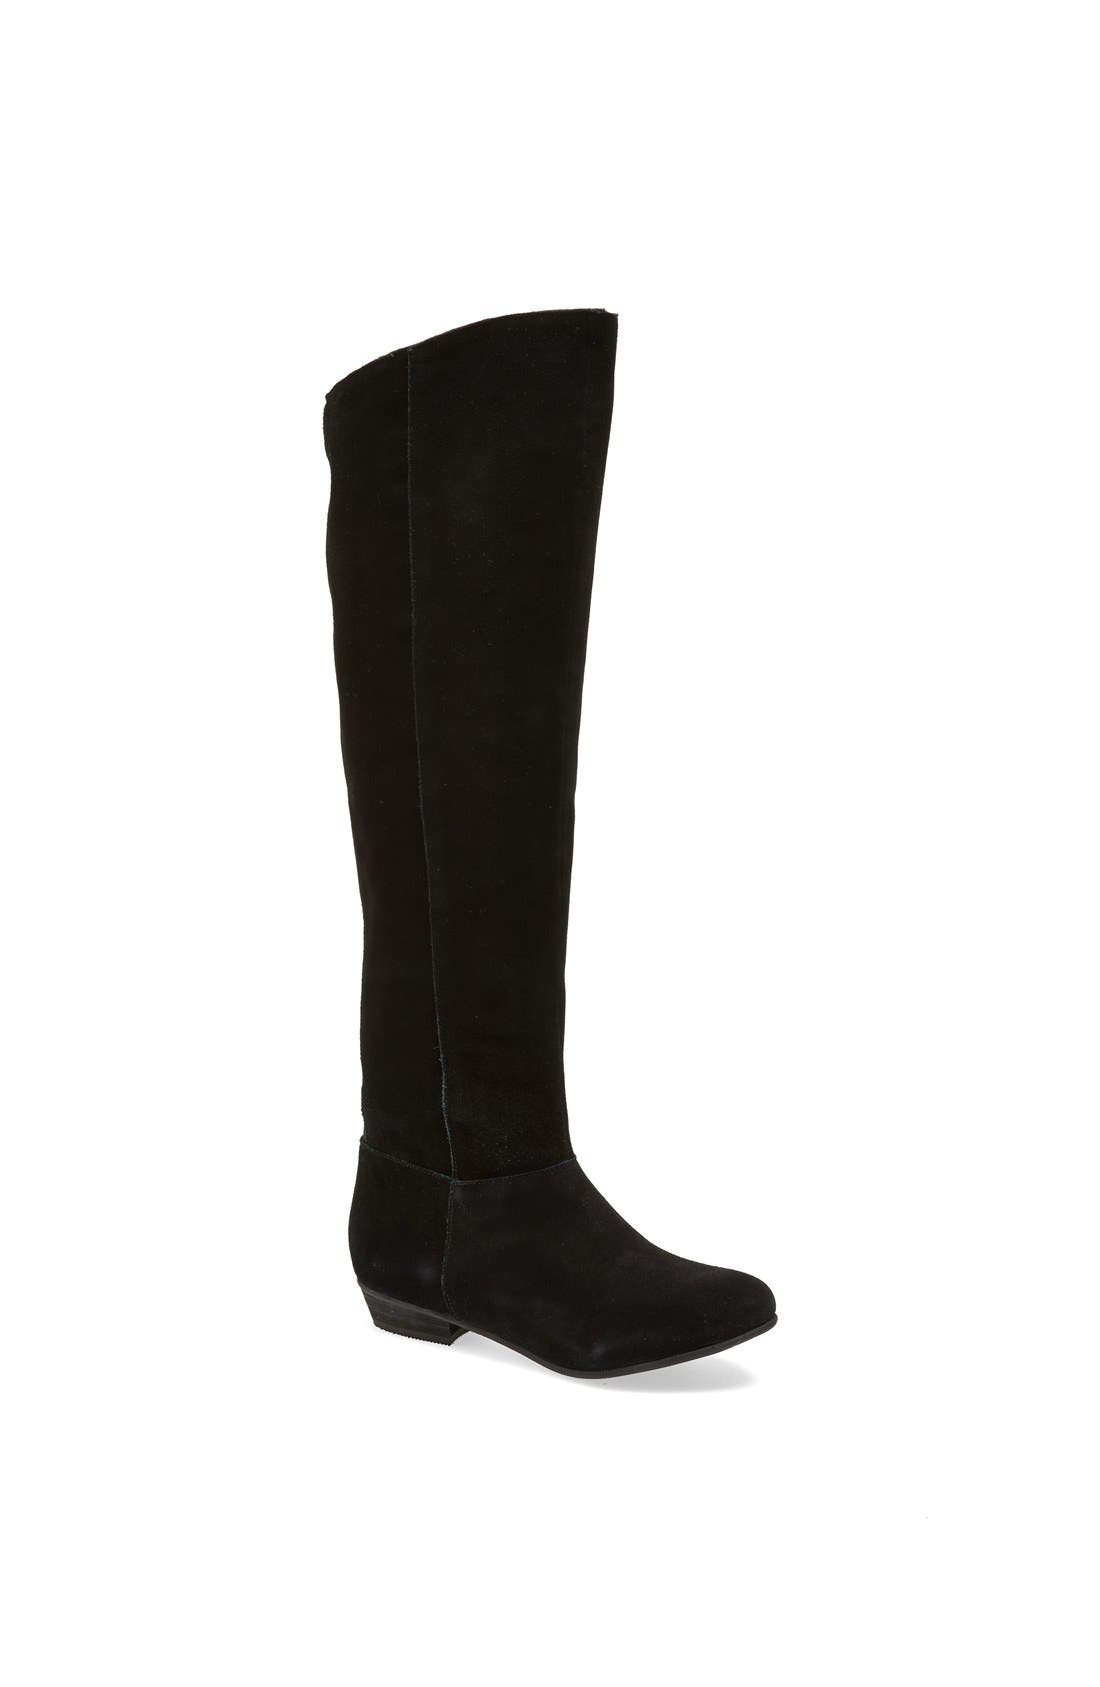 Main Image - Steve Madden 'Cuality' Knee High Suede Boot